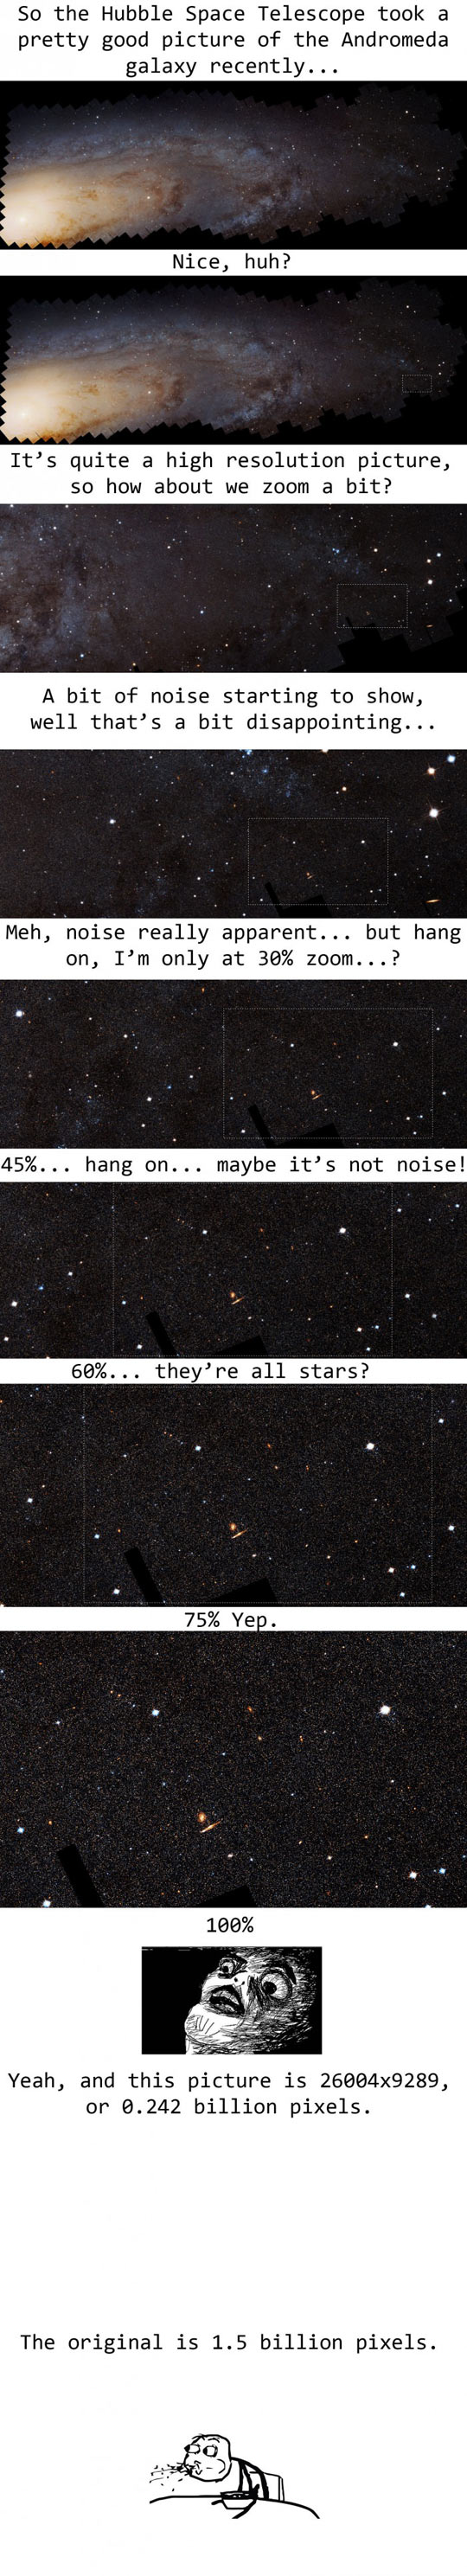 Hubble Is Pretty Nifty